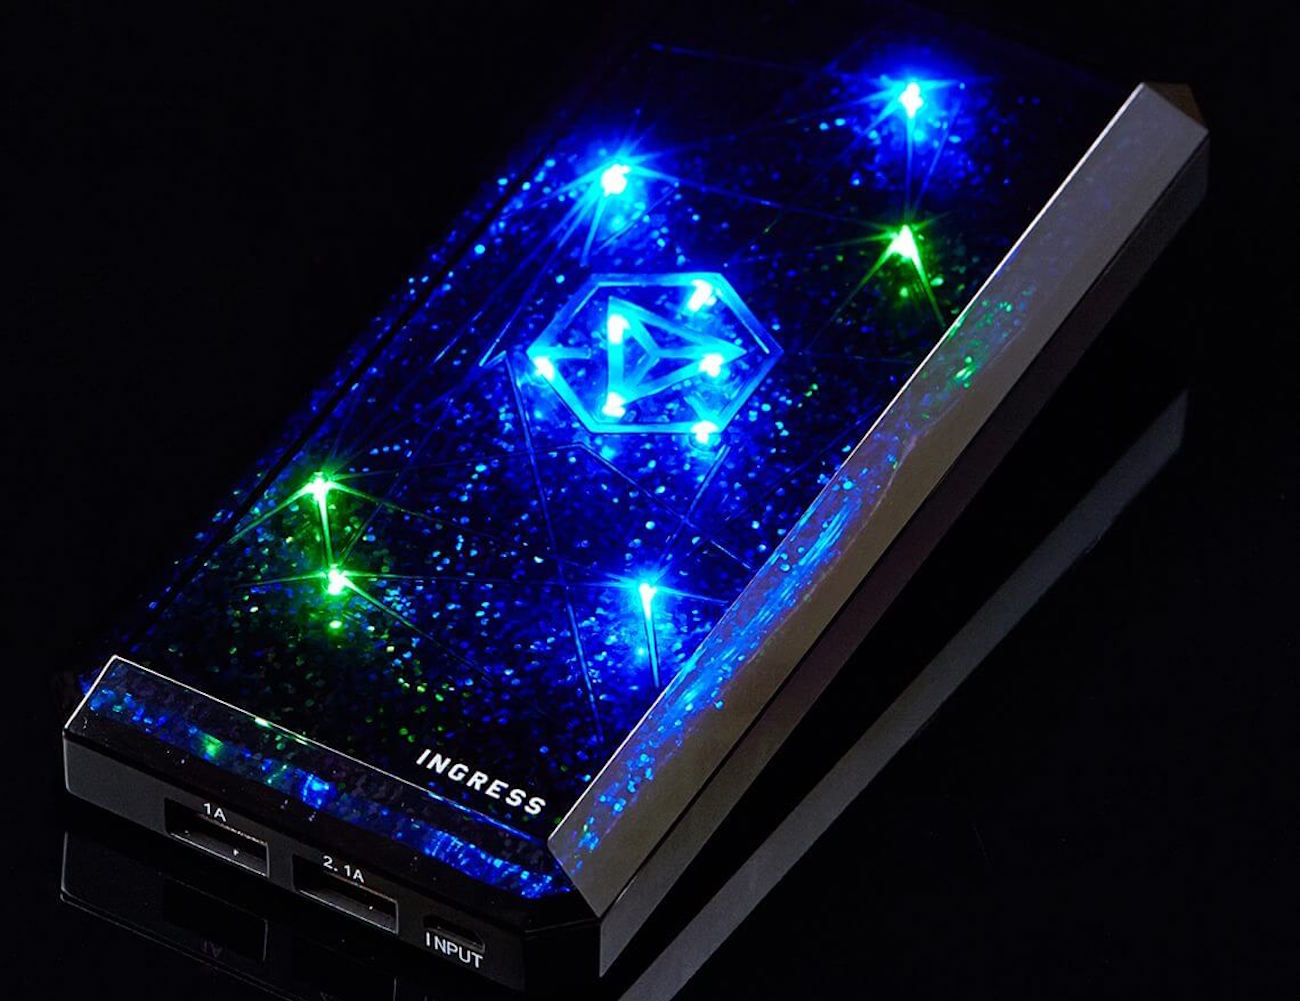 Ingress Power Cube by cheero